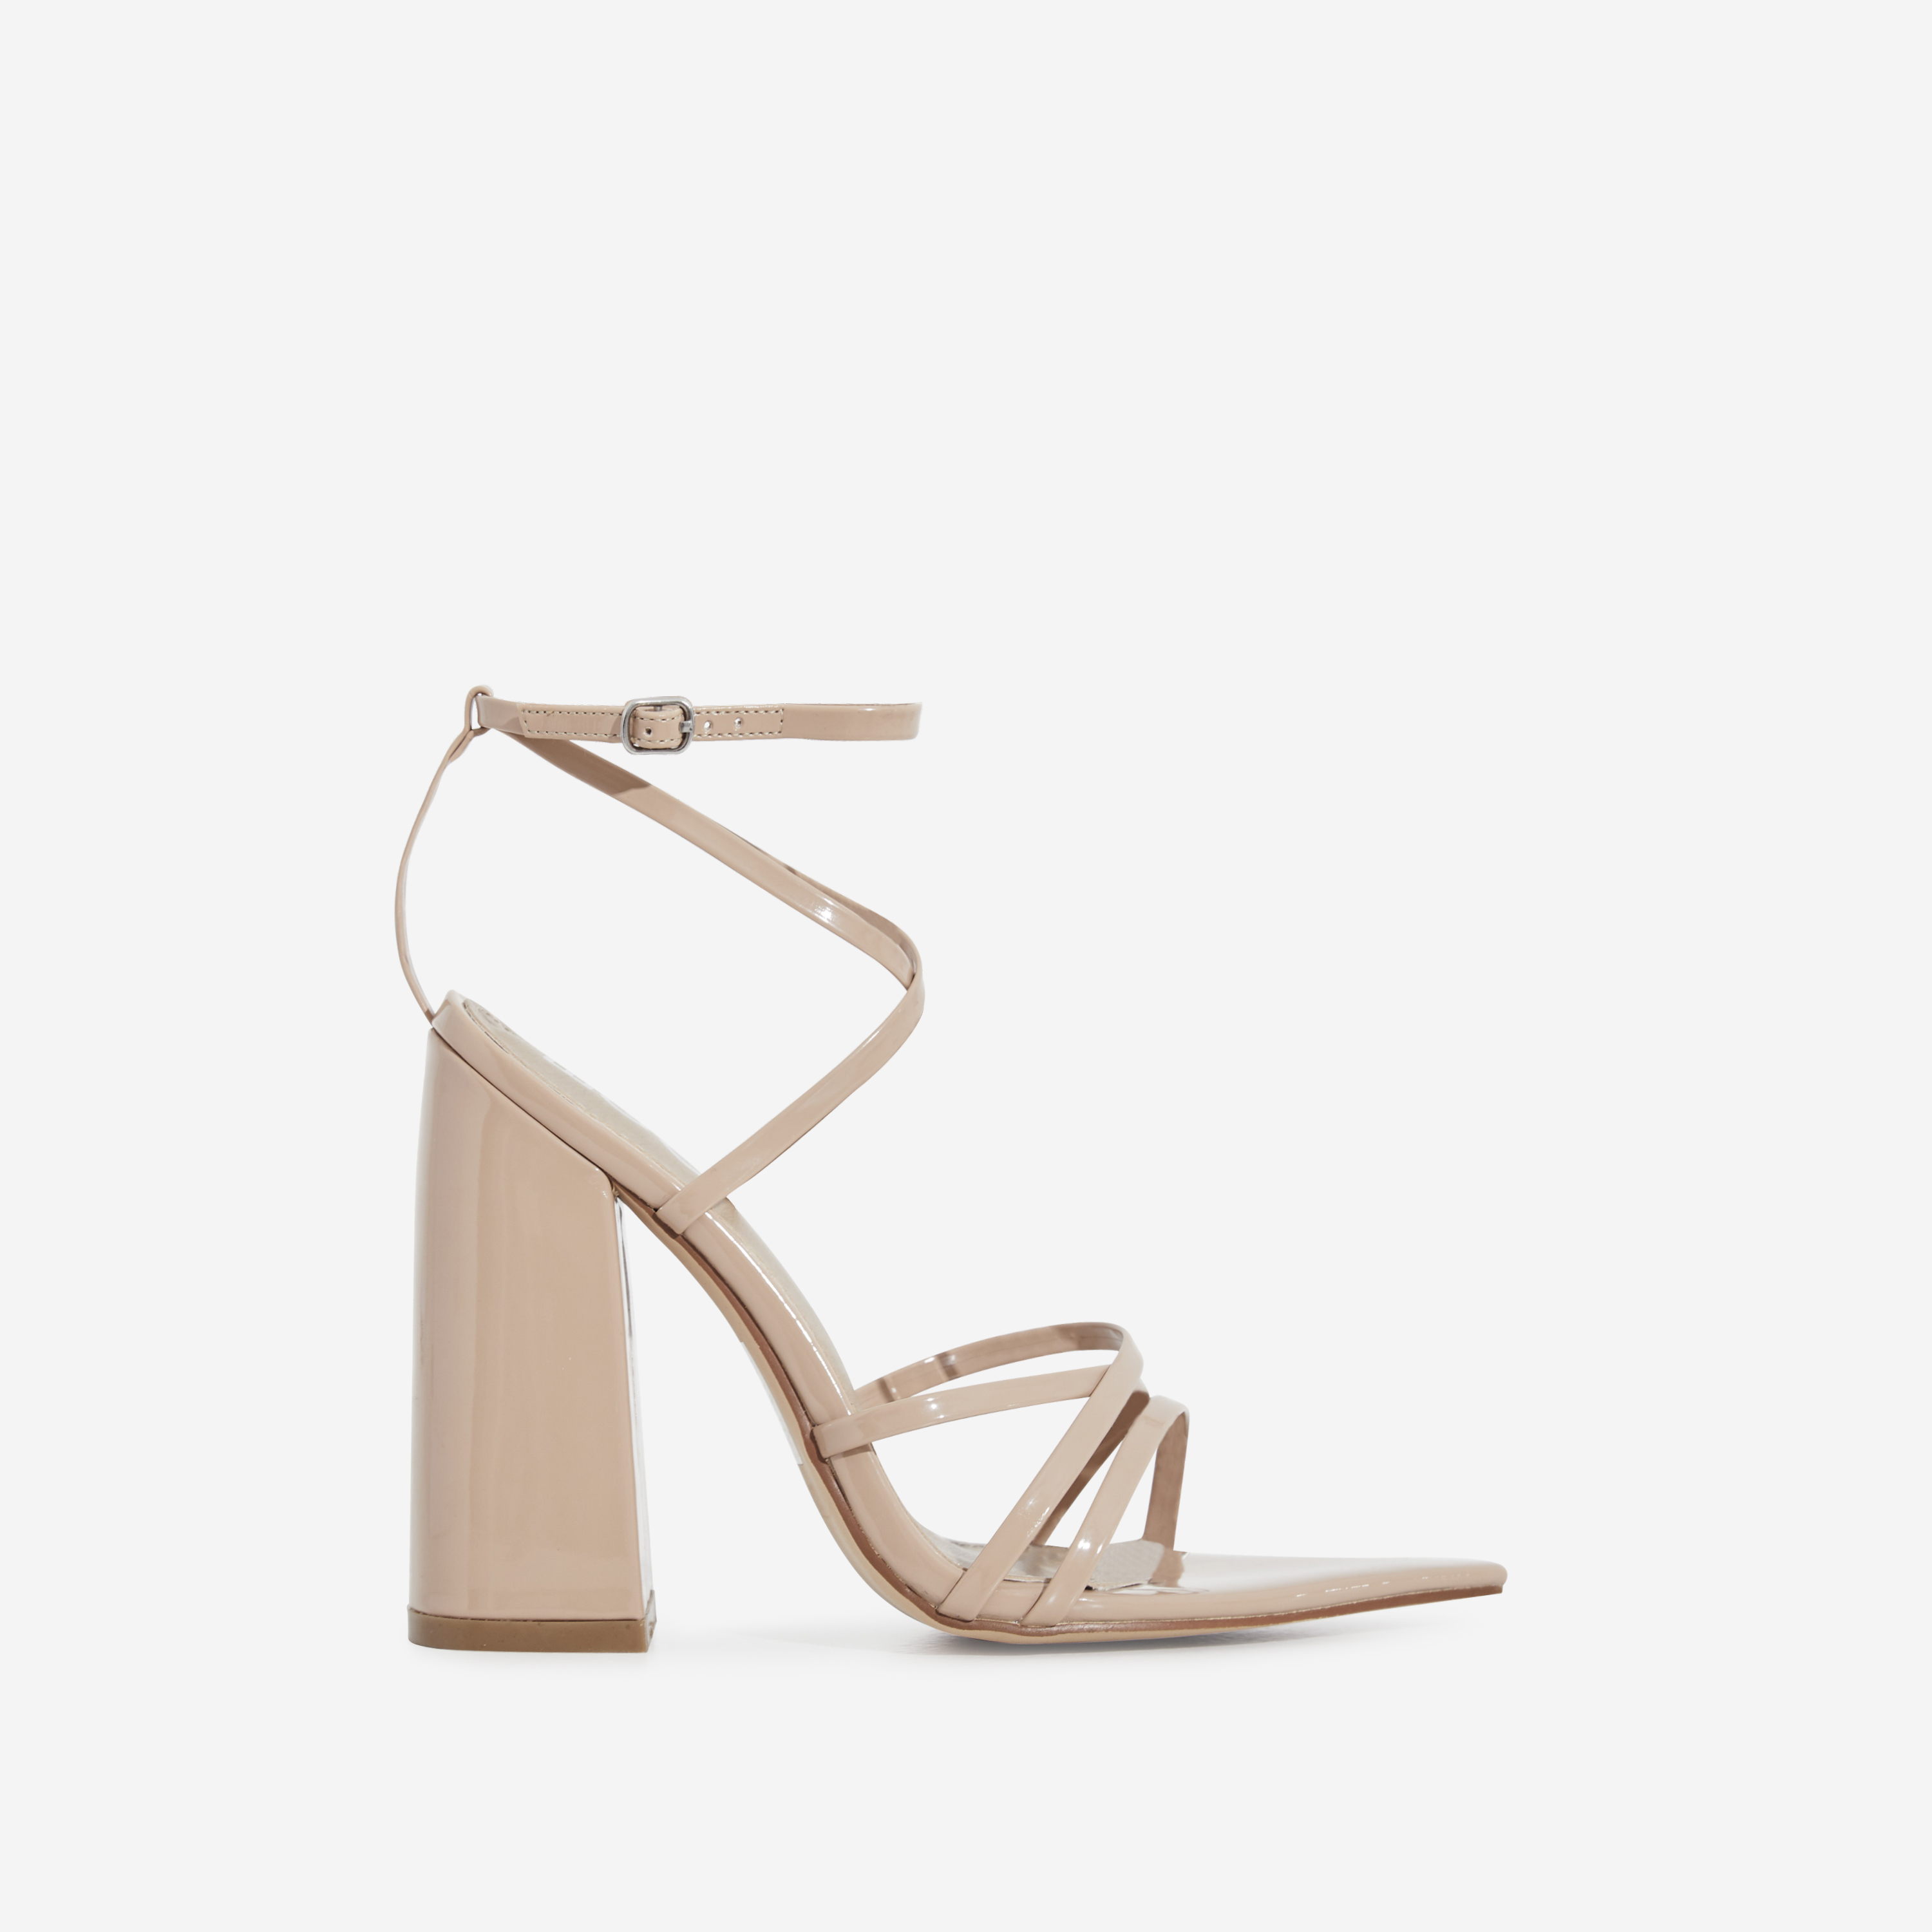 Halo Pointed Toe Block Heel In Nude Patent